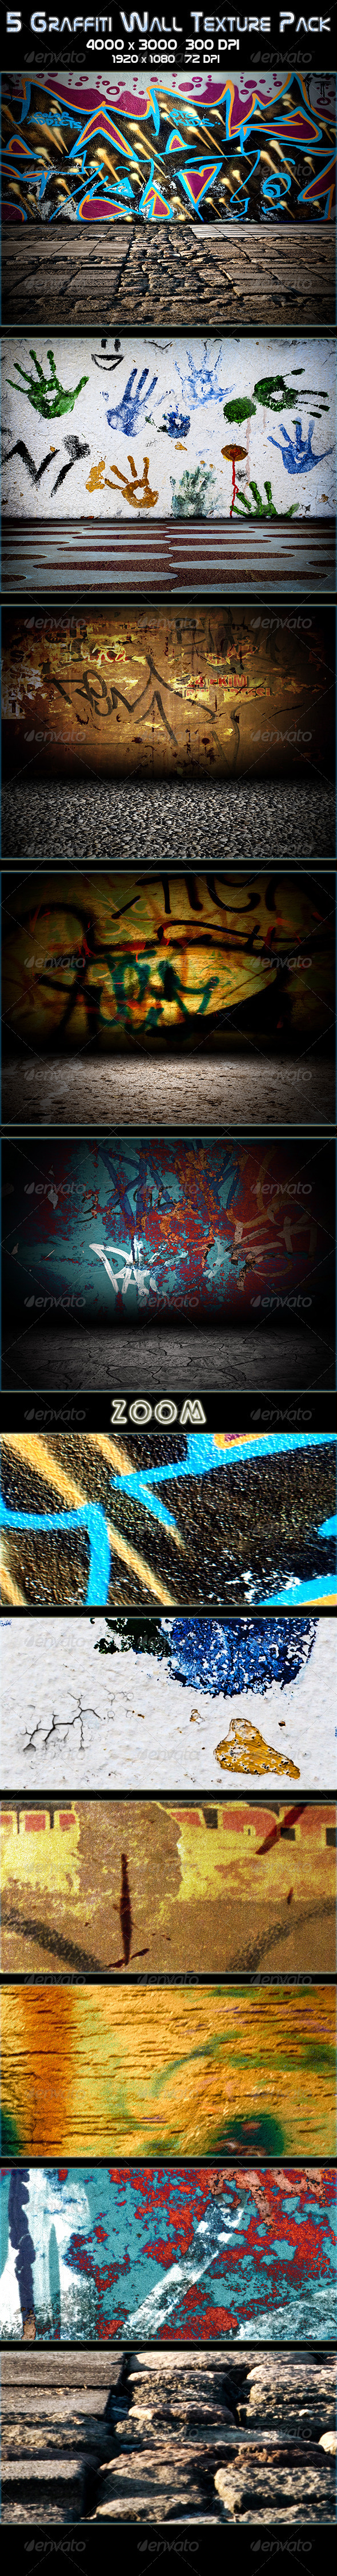 GraphicRiver 5 Graffiti Wall Texture Pack 3327643